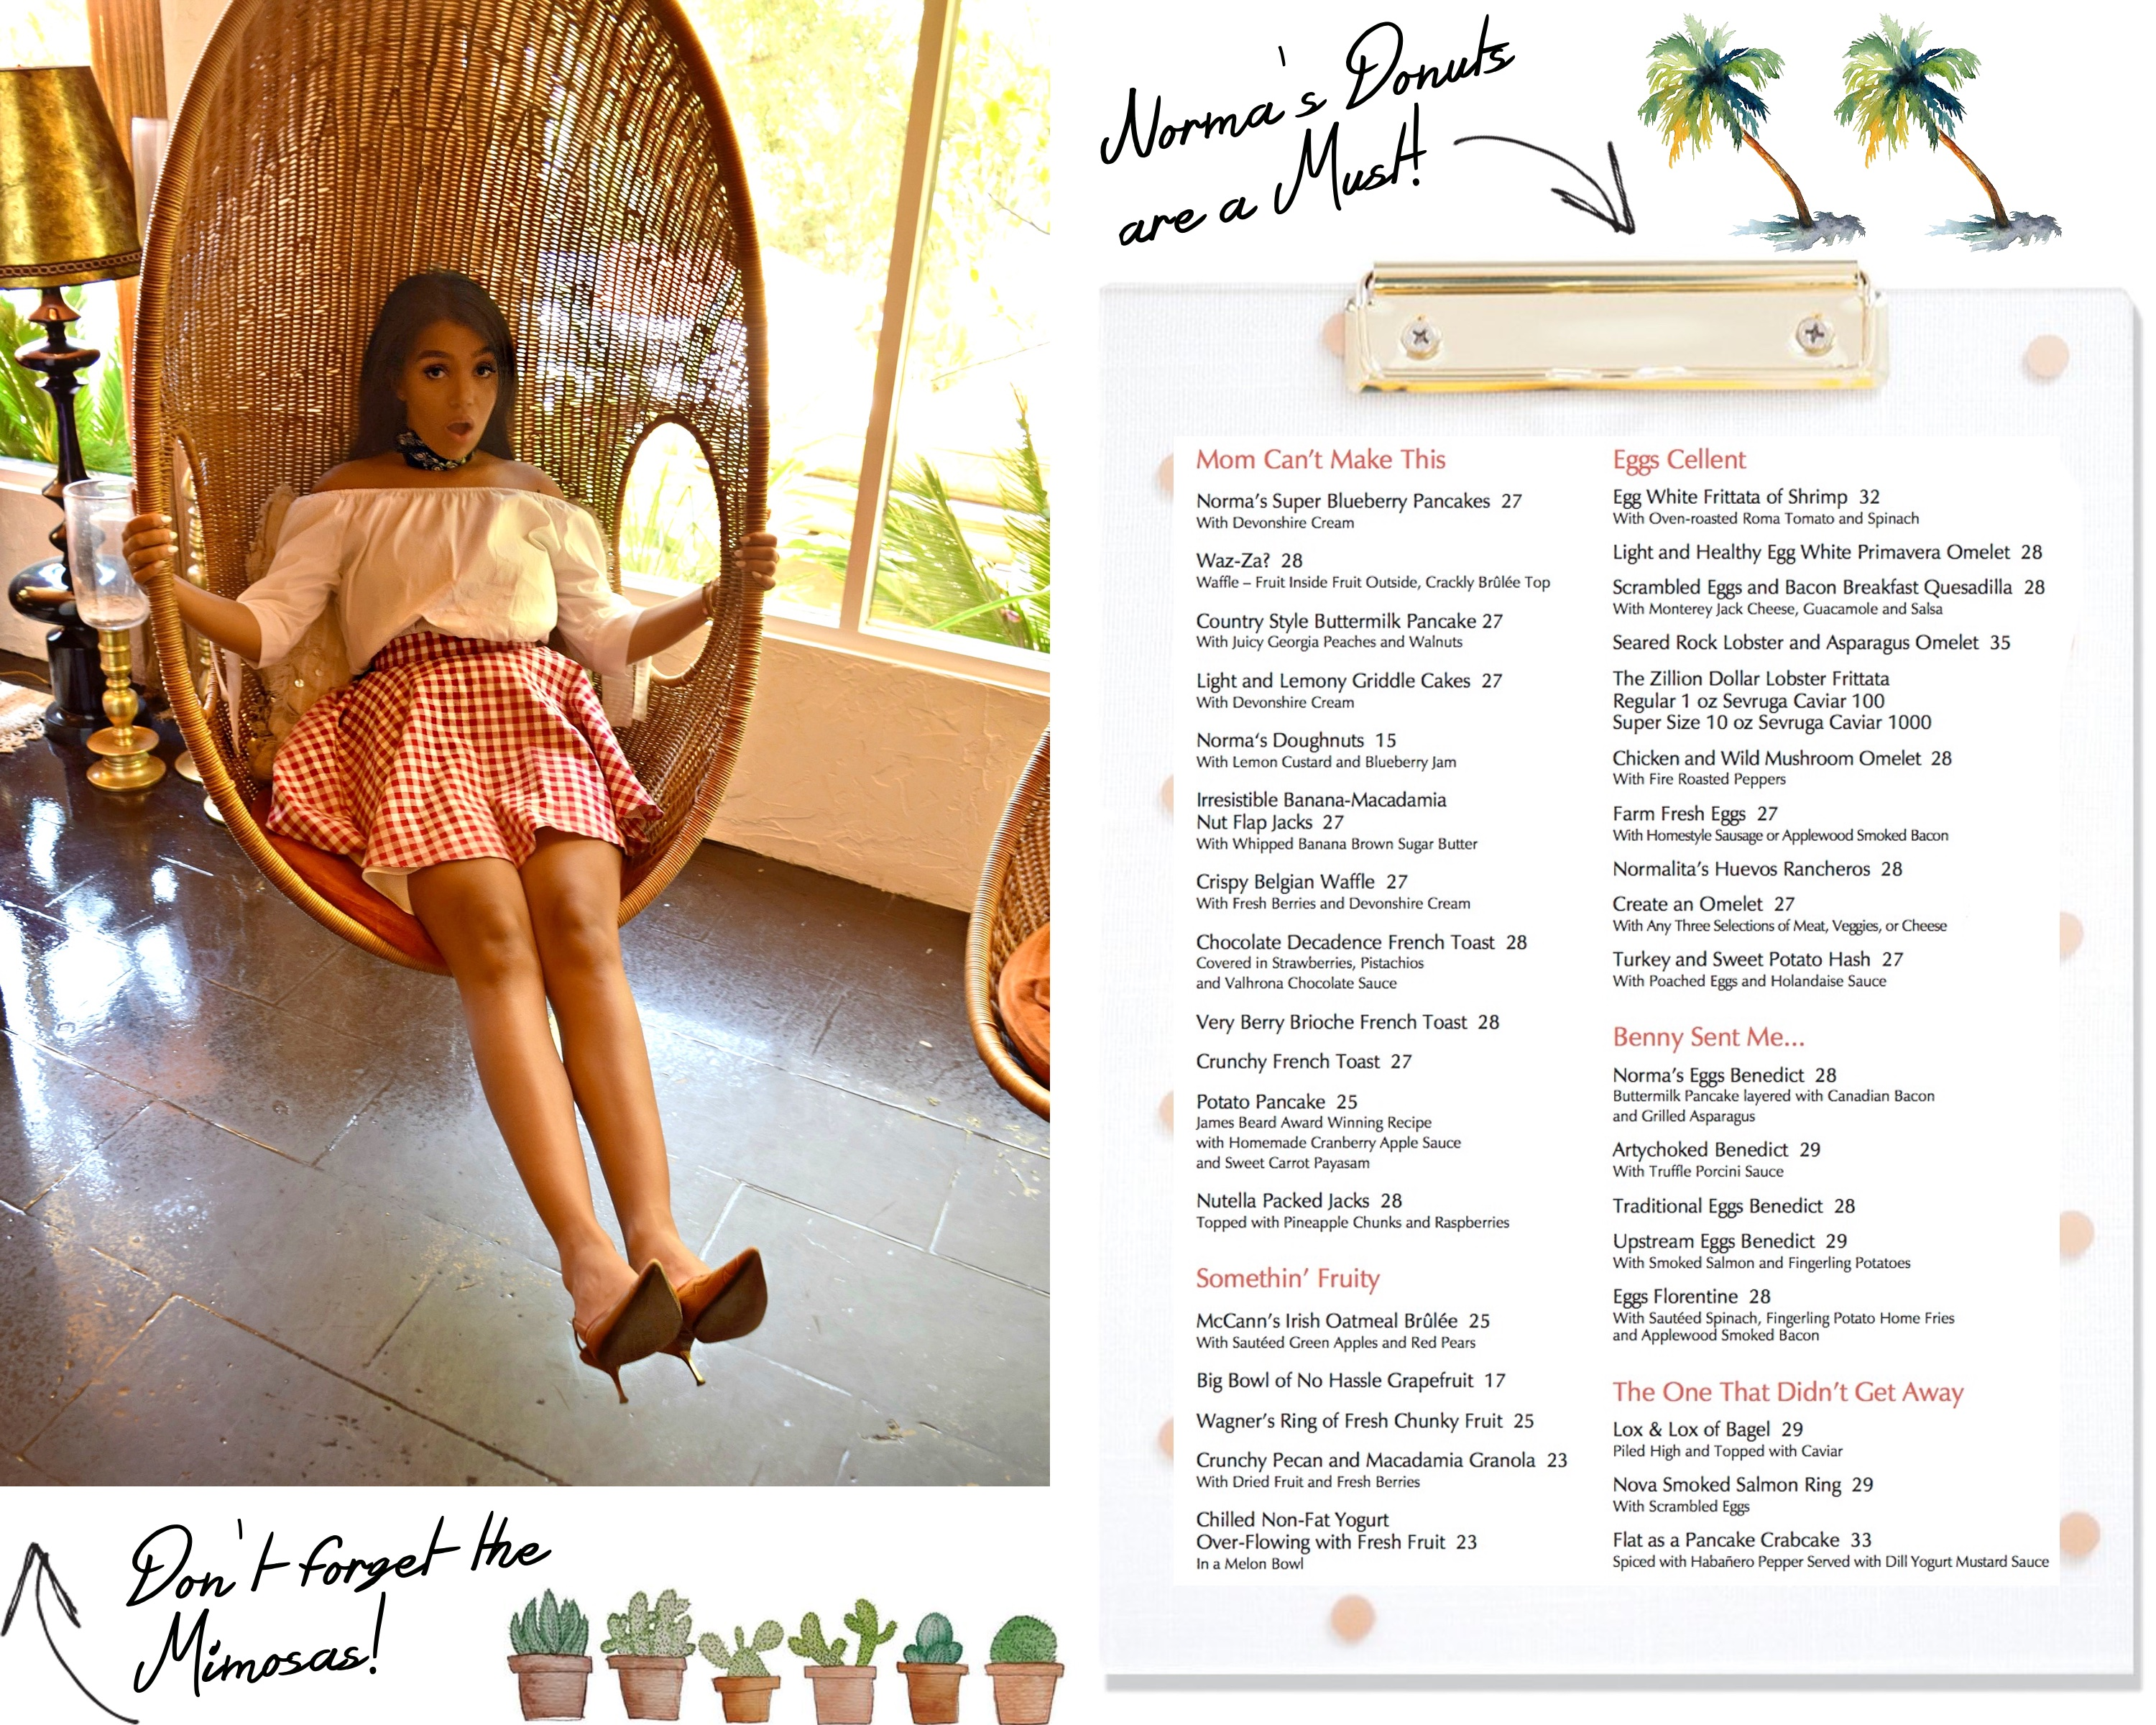 Palm Springs City Guide, The Parker Hotel Palm Springs, Norma's Restaurant: To Style, With Love